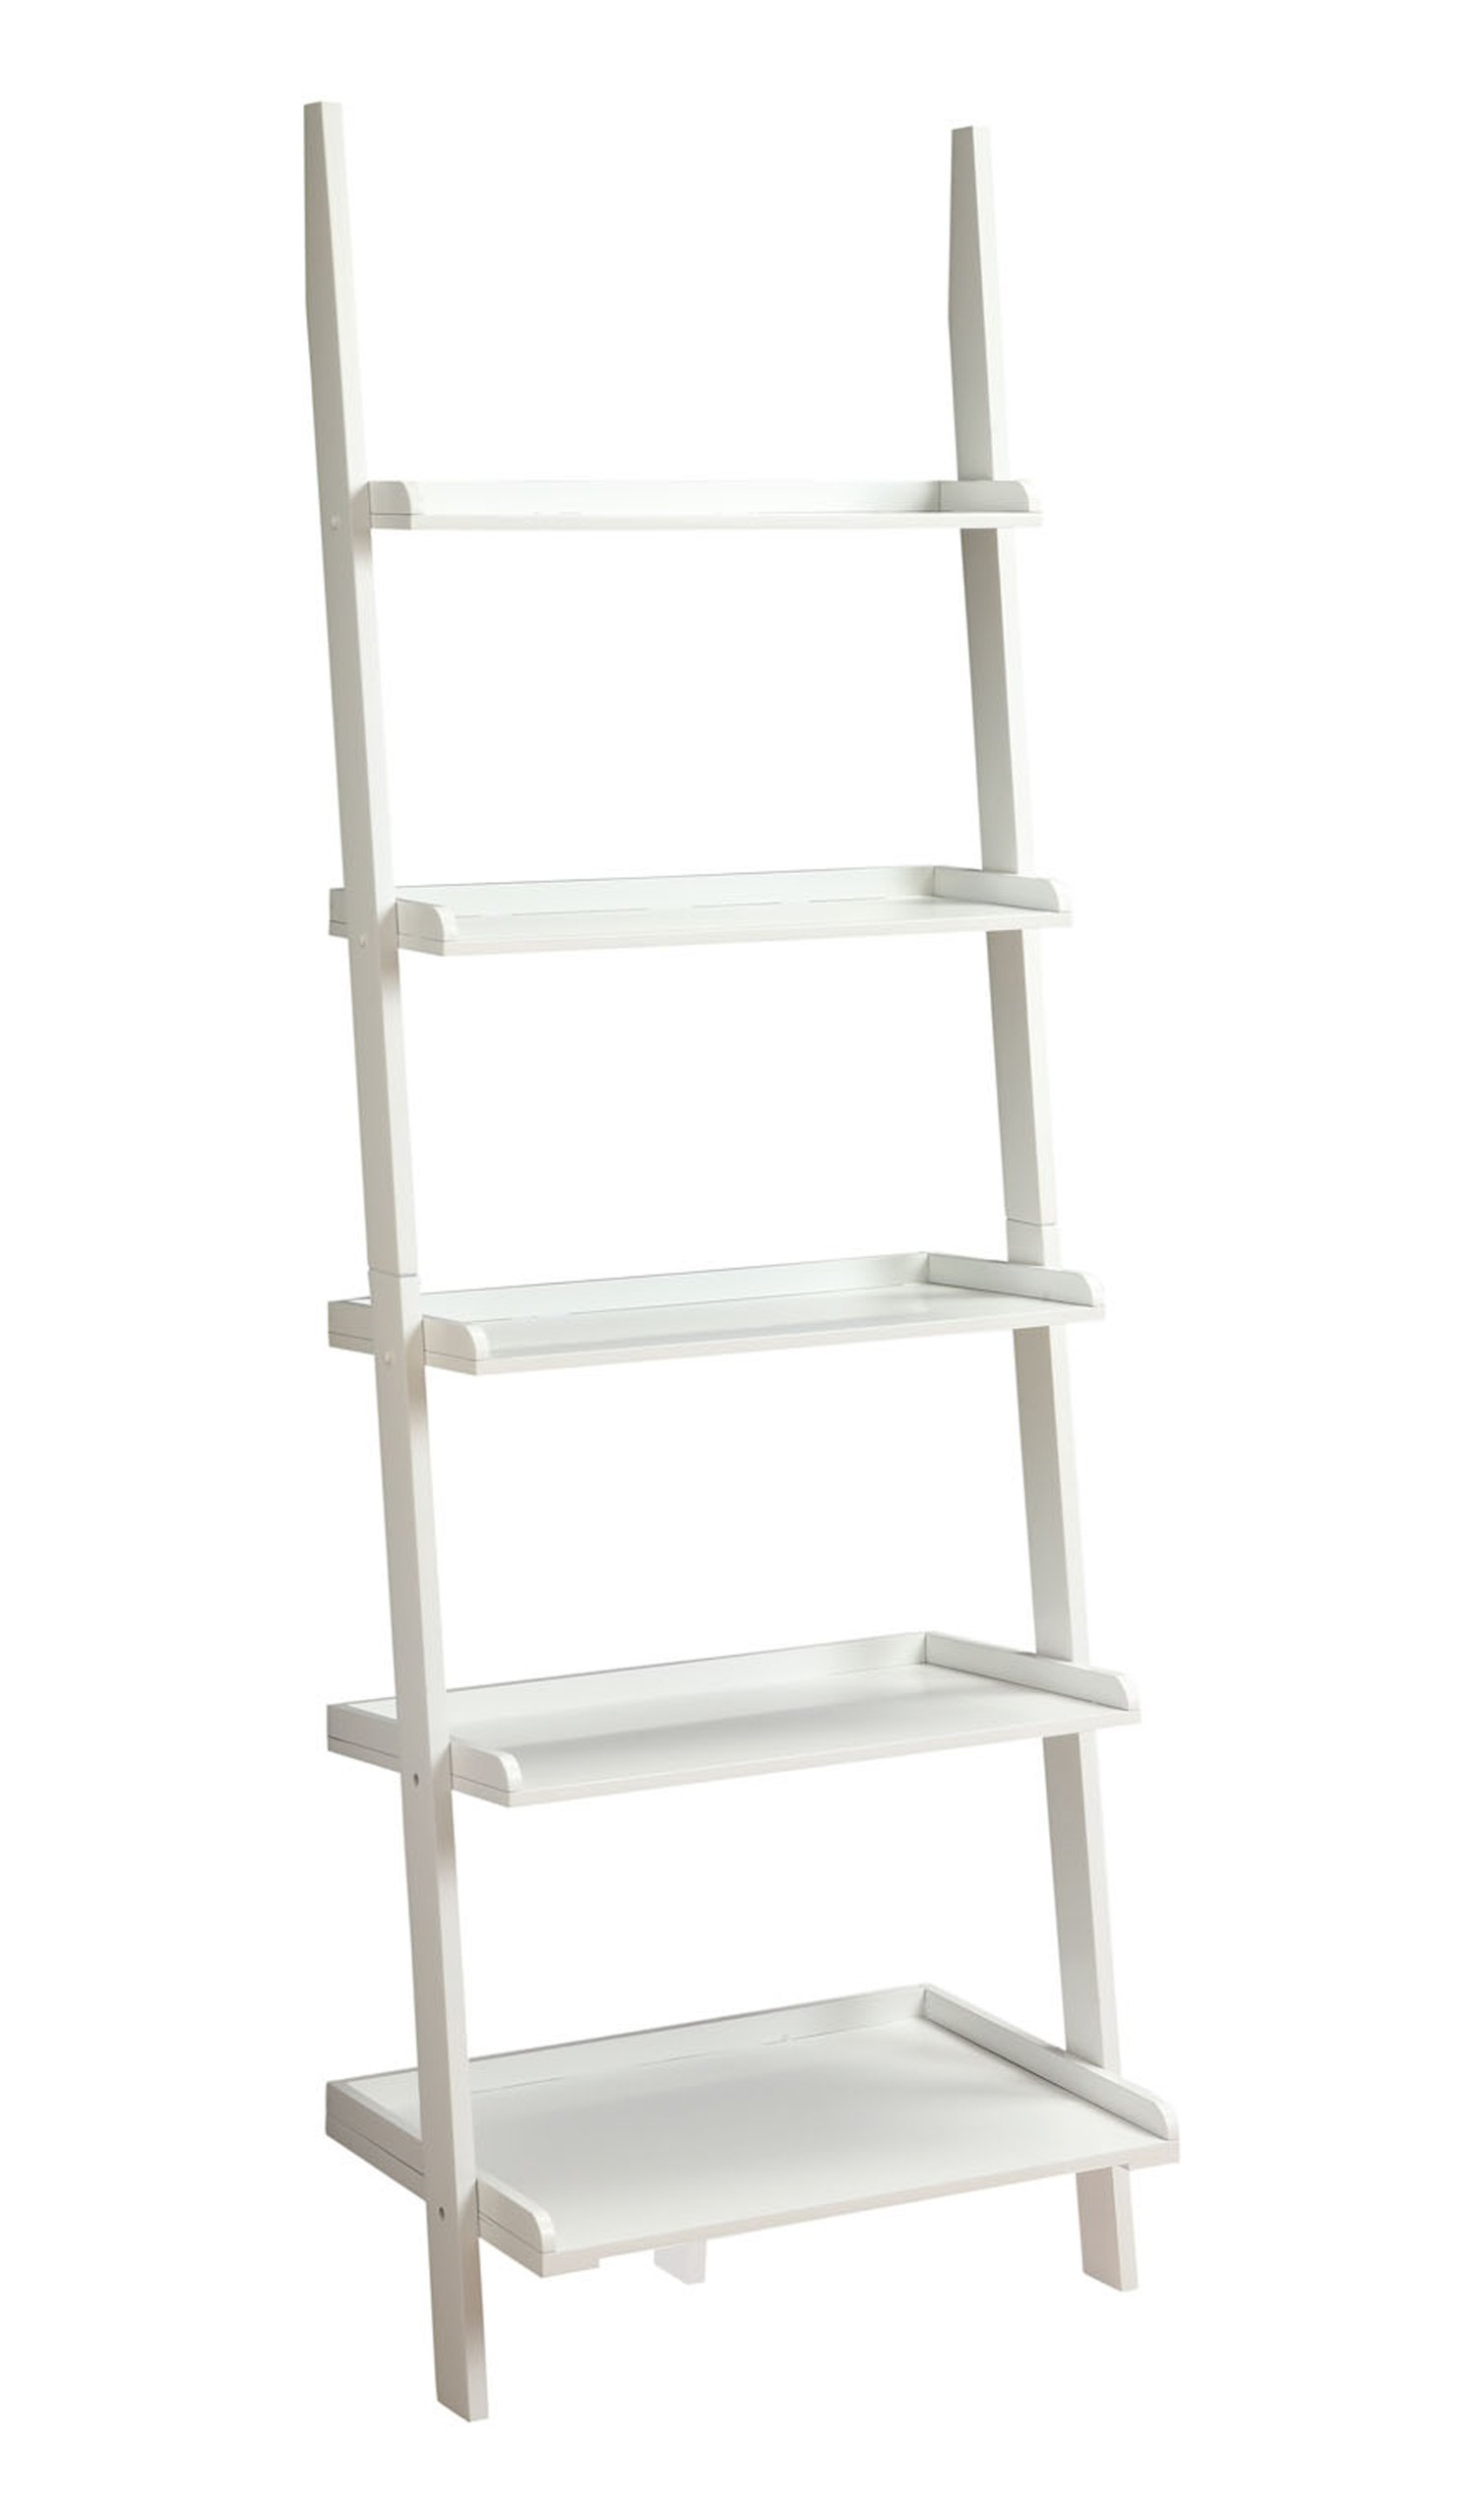 Convenience Concepts French Country Bookshelf Ladder, White by Convenience Concepts (Image #1)